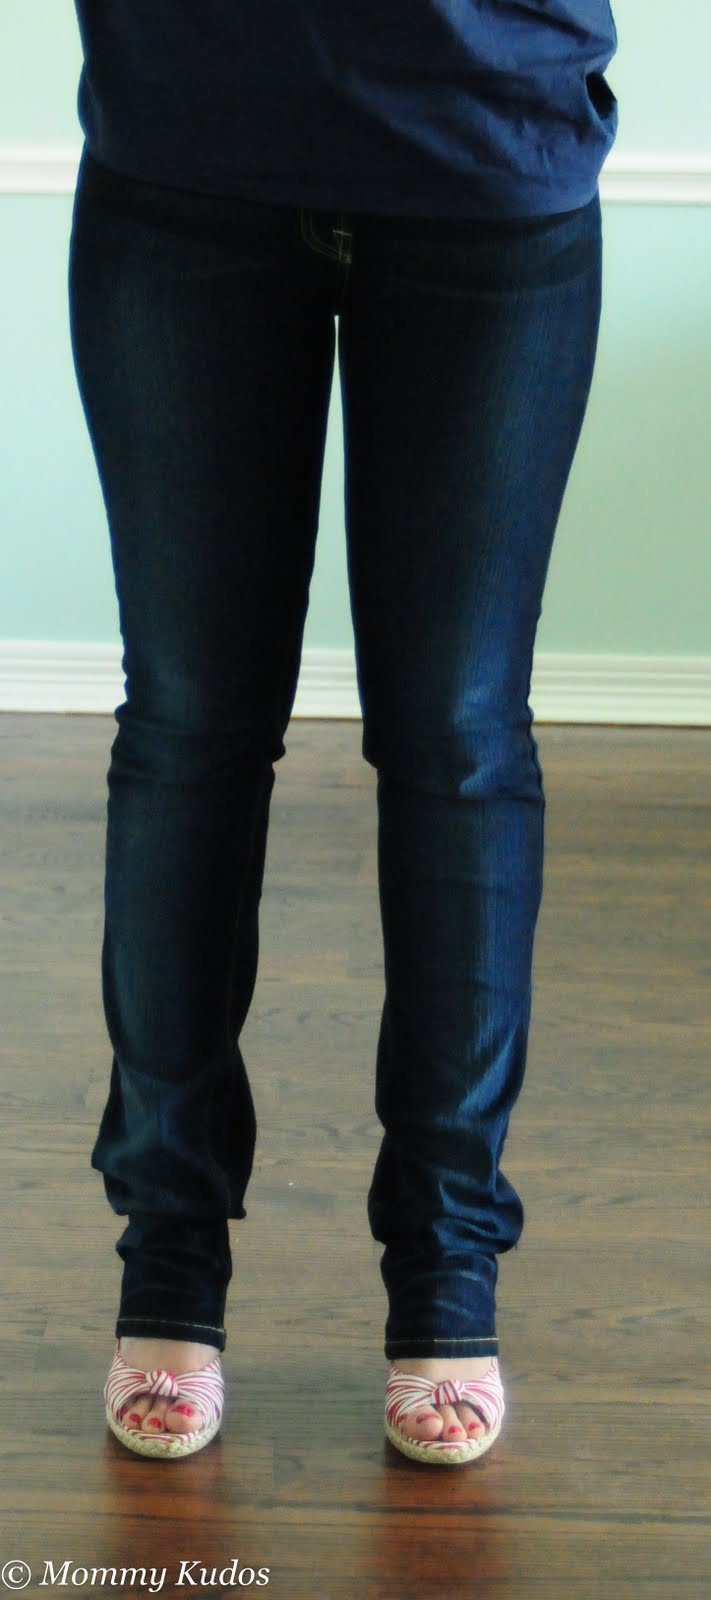 Hello! SkinnyJeans Review &amp Giveaway - Mommy Kudos